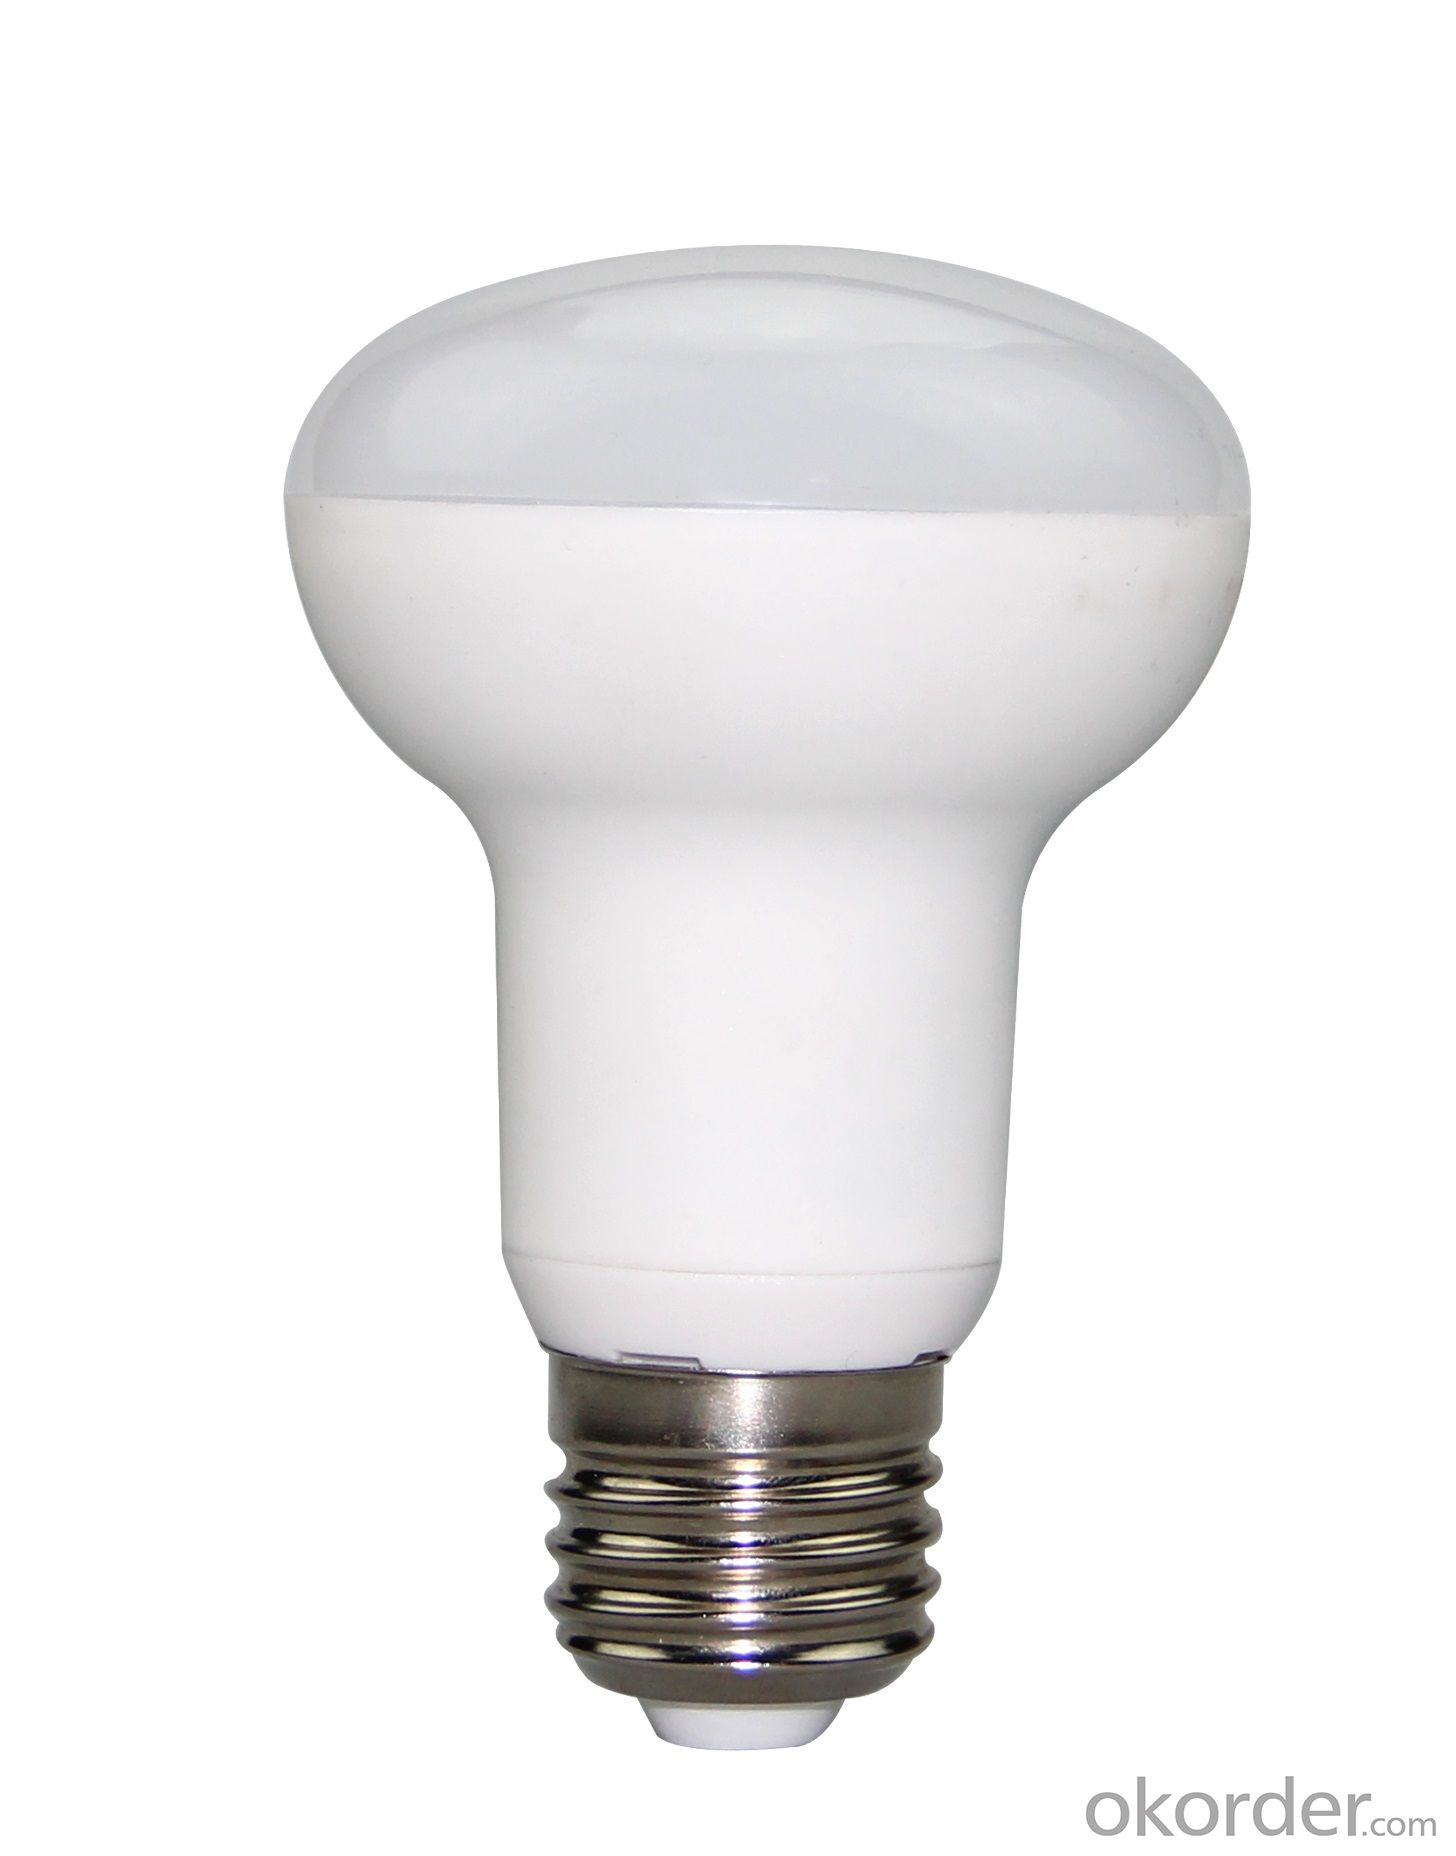 Buy led bulb light a70e27 tp022 2835t18w price size weight model width Led light bulb cost